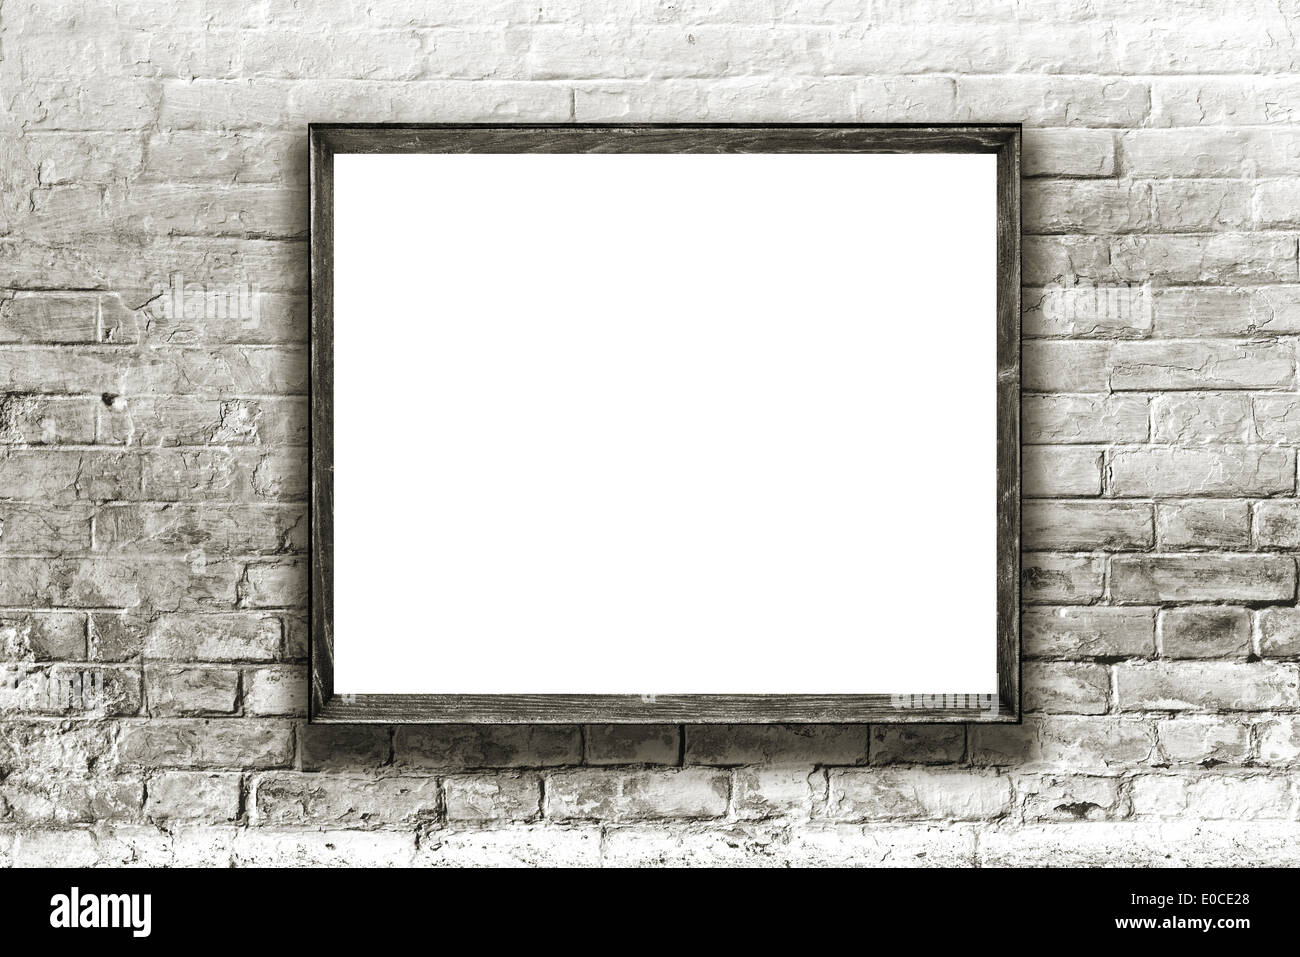 picture frame art gallery hang wall stock photos picture frame art